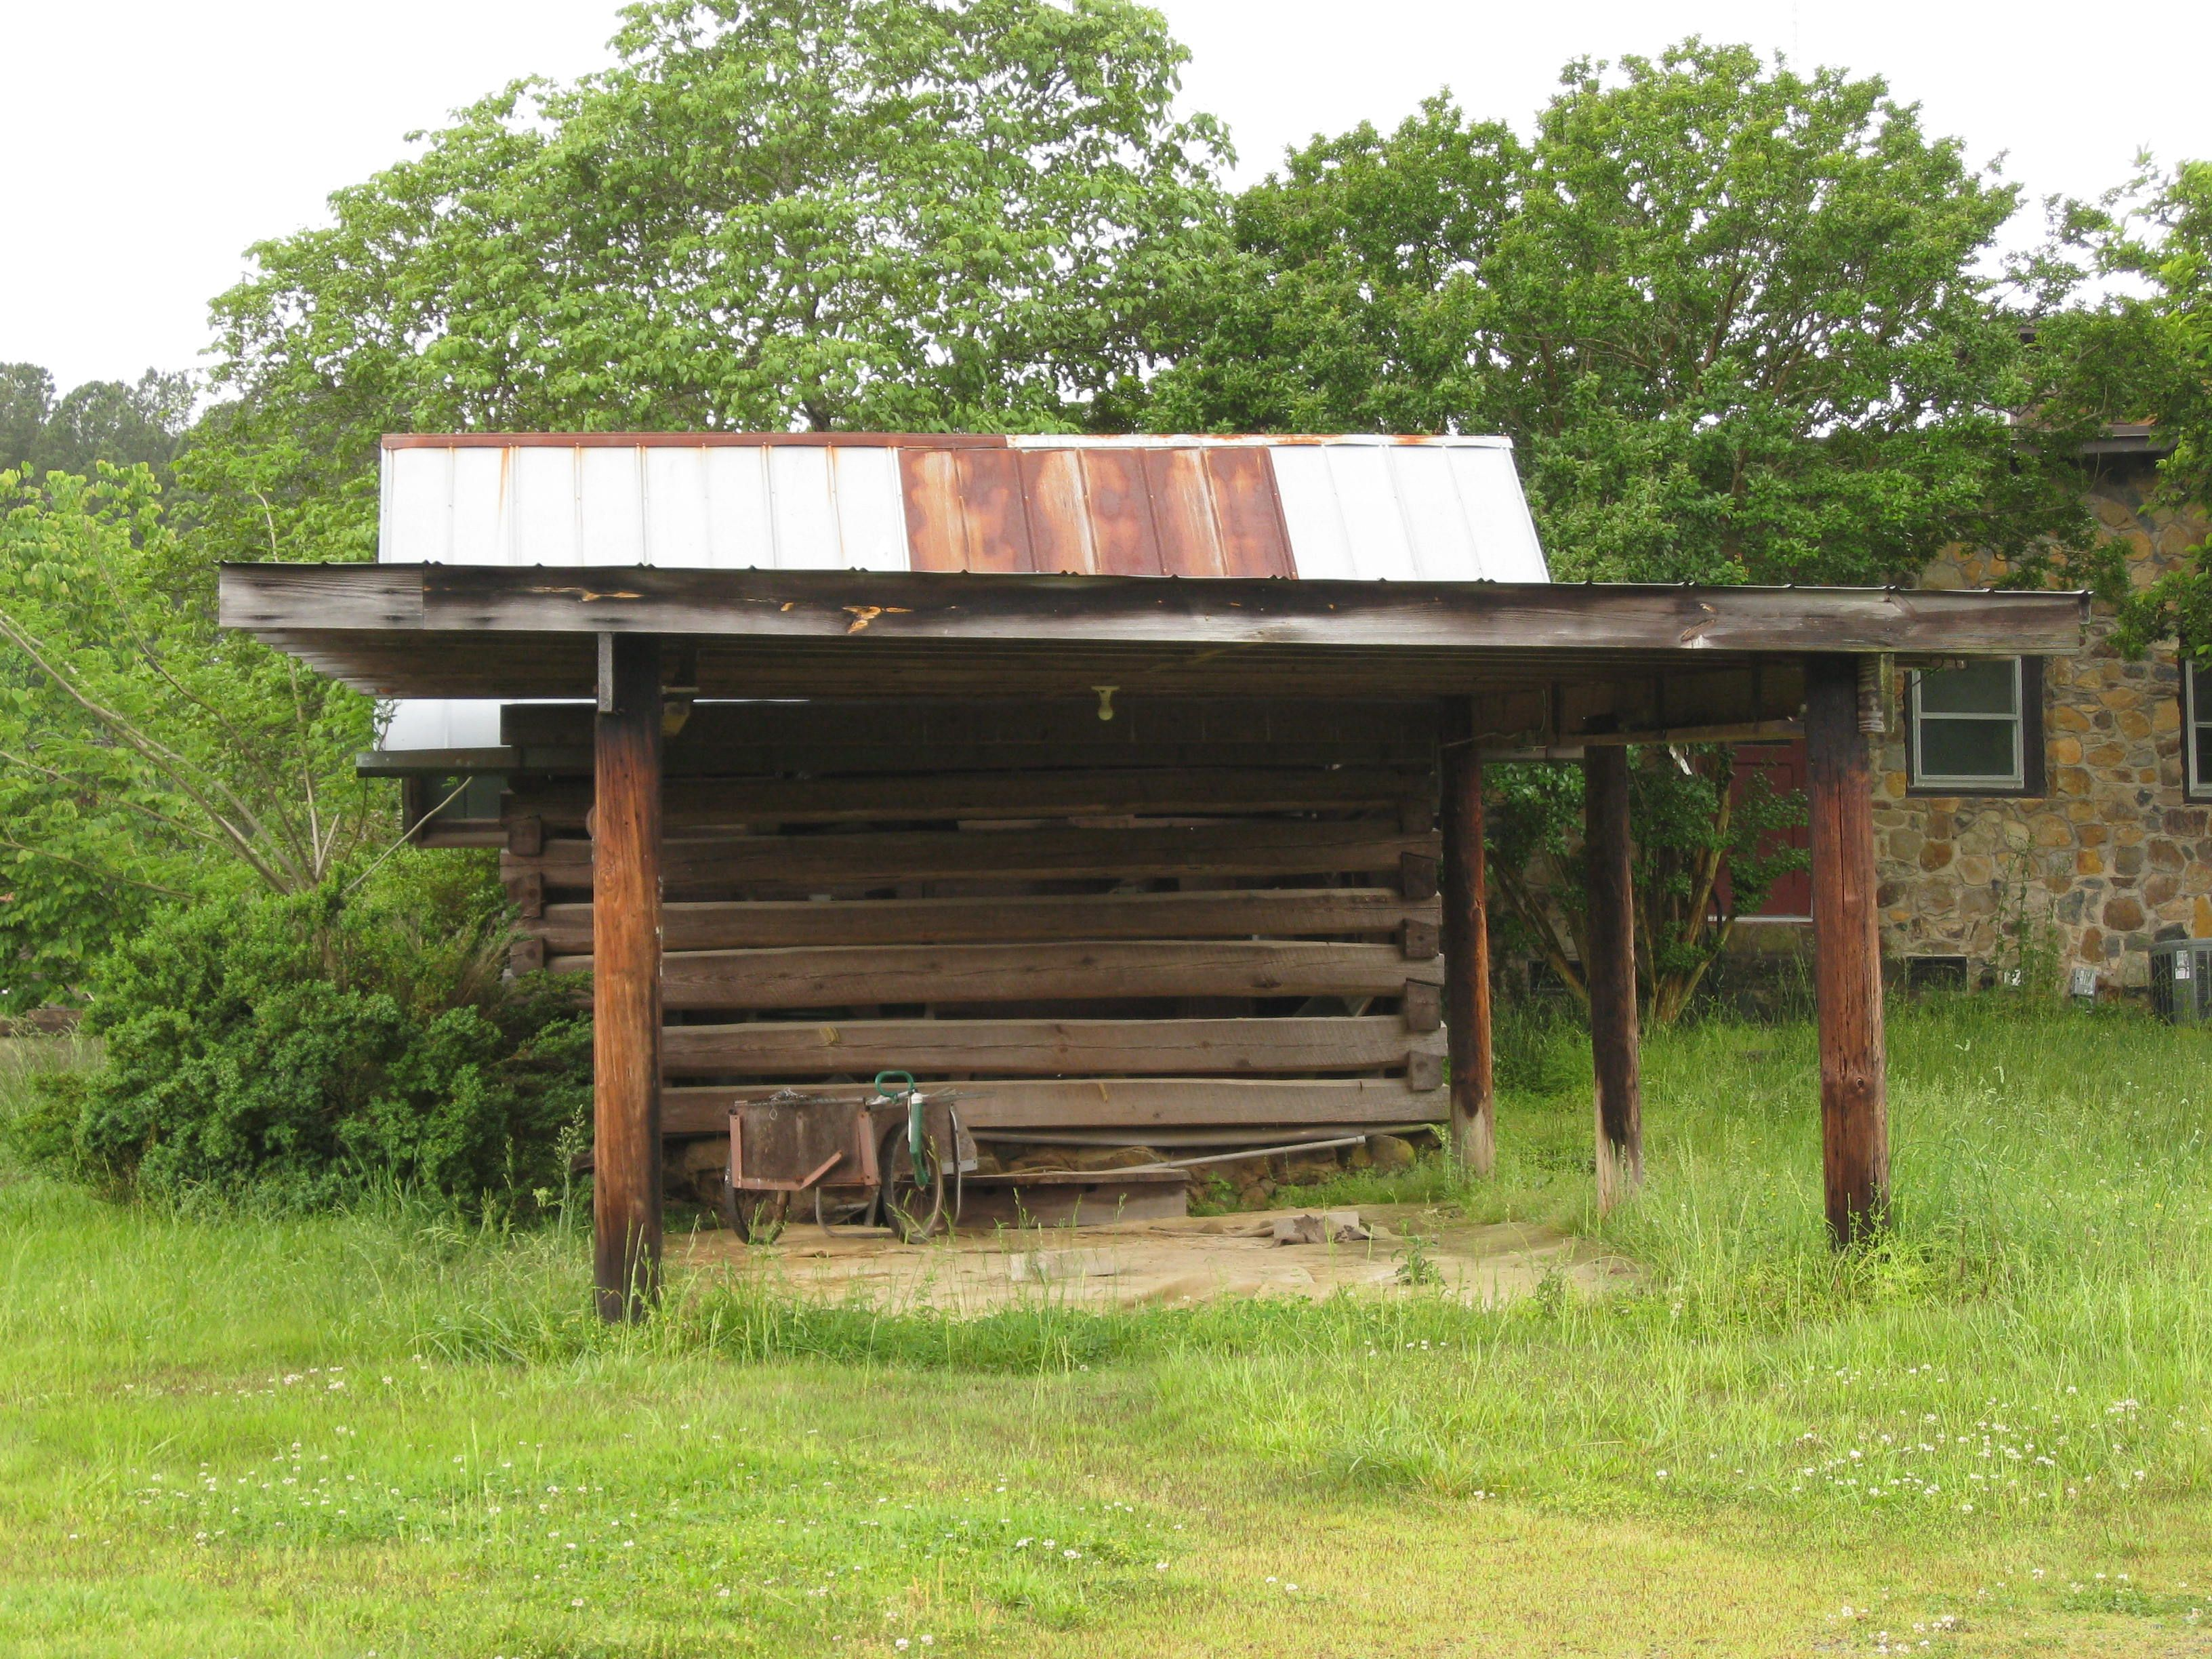 Very old log barn with open shed, Chatham County, NC